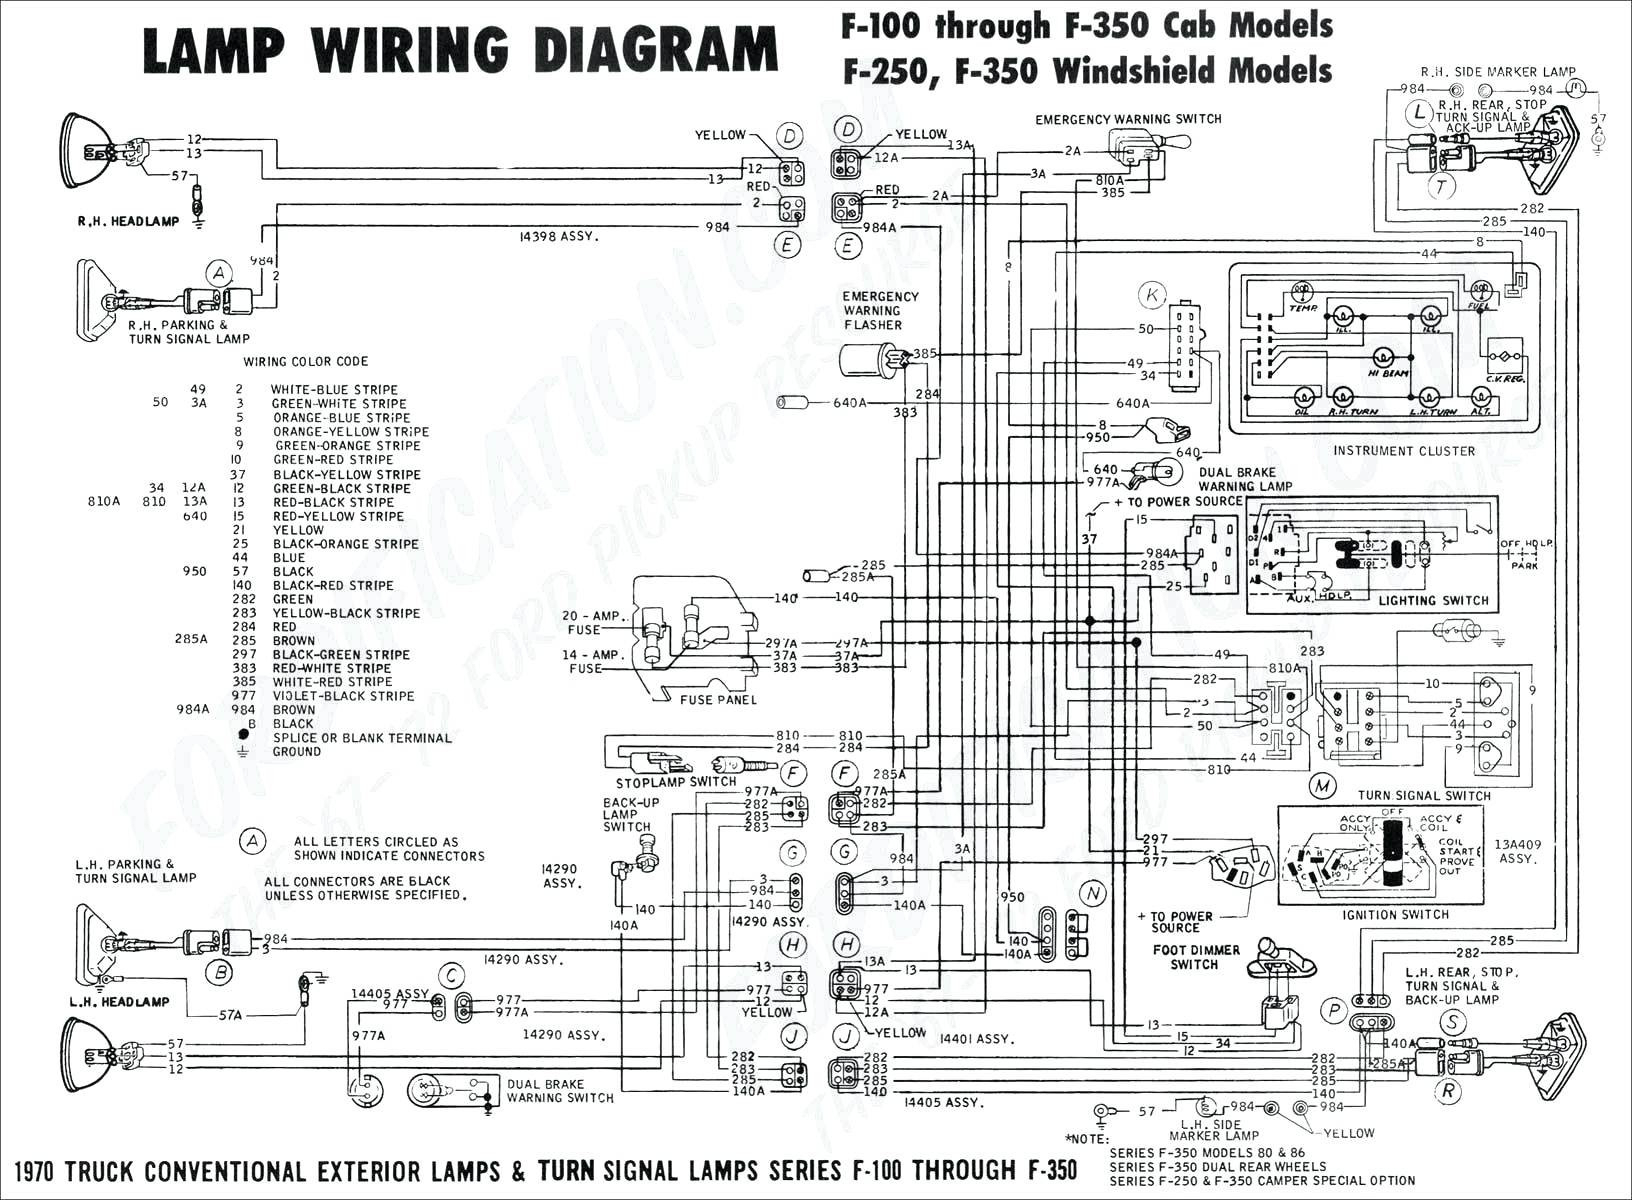 2005 Ford F 250 Wiring Diagram - Wiring Diagrams Thumbs - 2008 Ford F250 Trailer Wiring Diagram